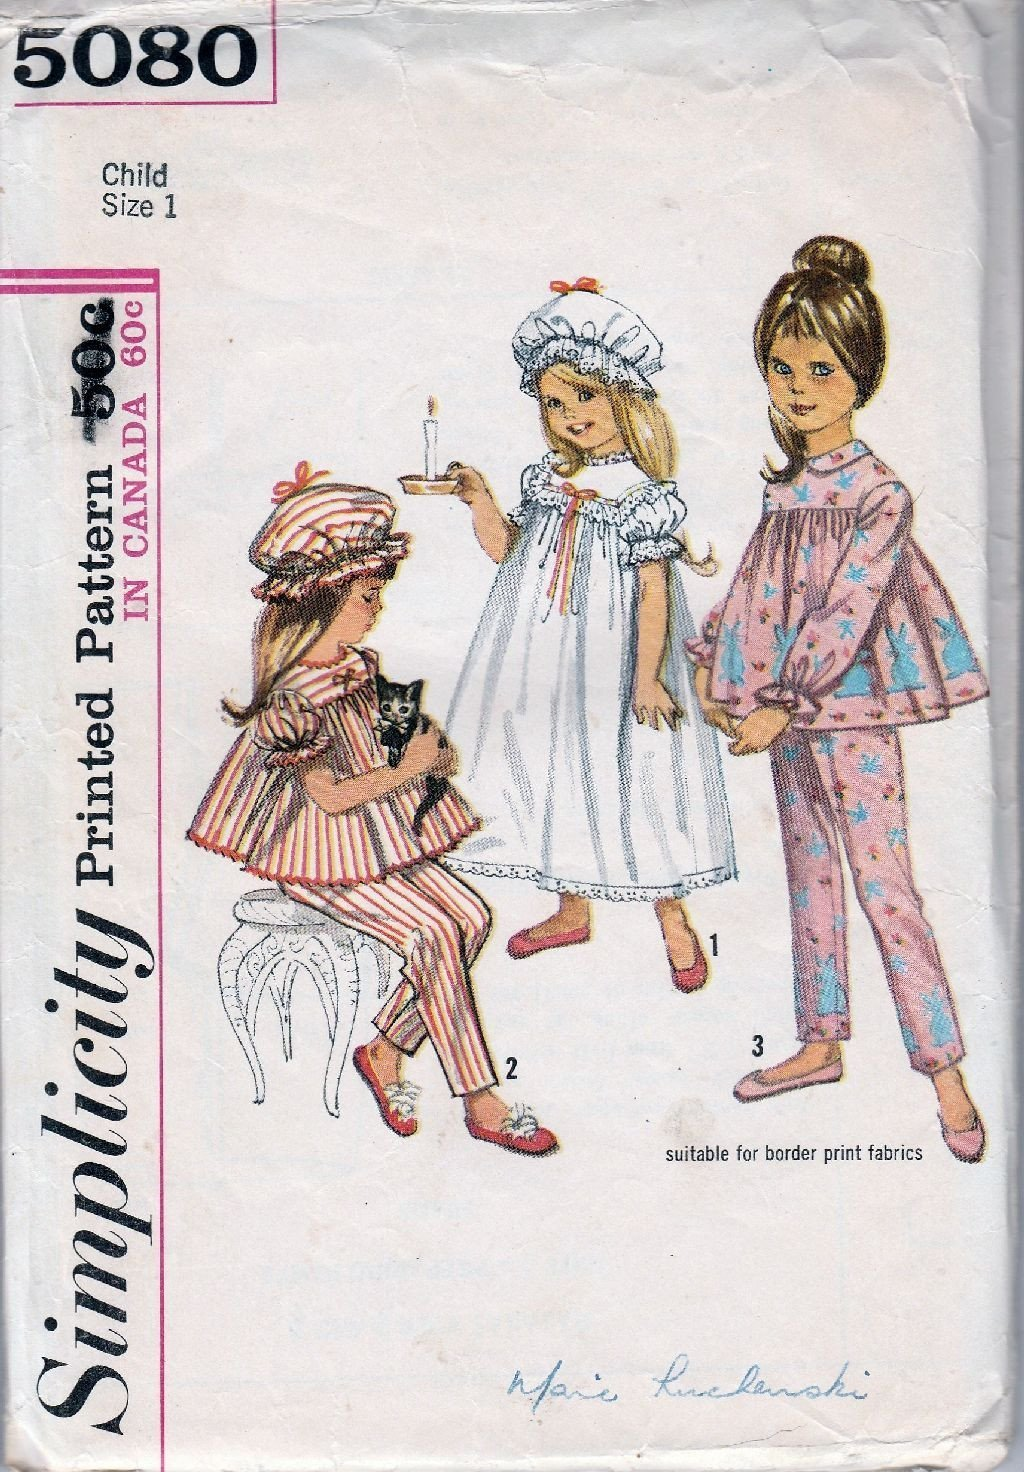 Simplicity 5080 Vintage Sewing Pattern 1960's Toddler Nightgown Pajamas Cap - VintageStitching - Vintage Sewing Patterns